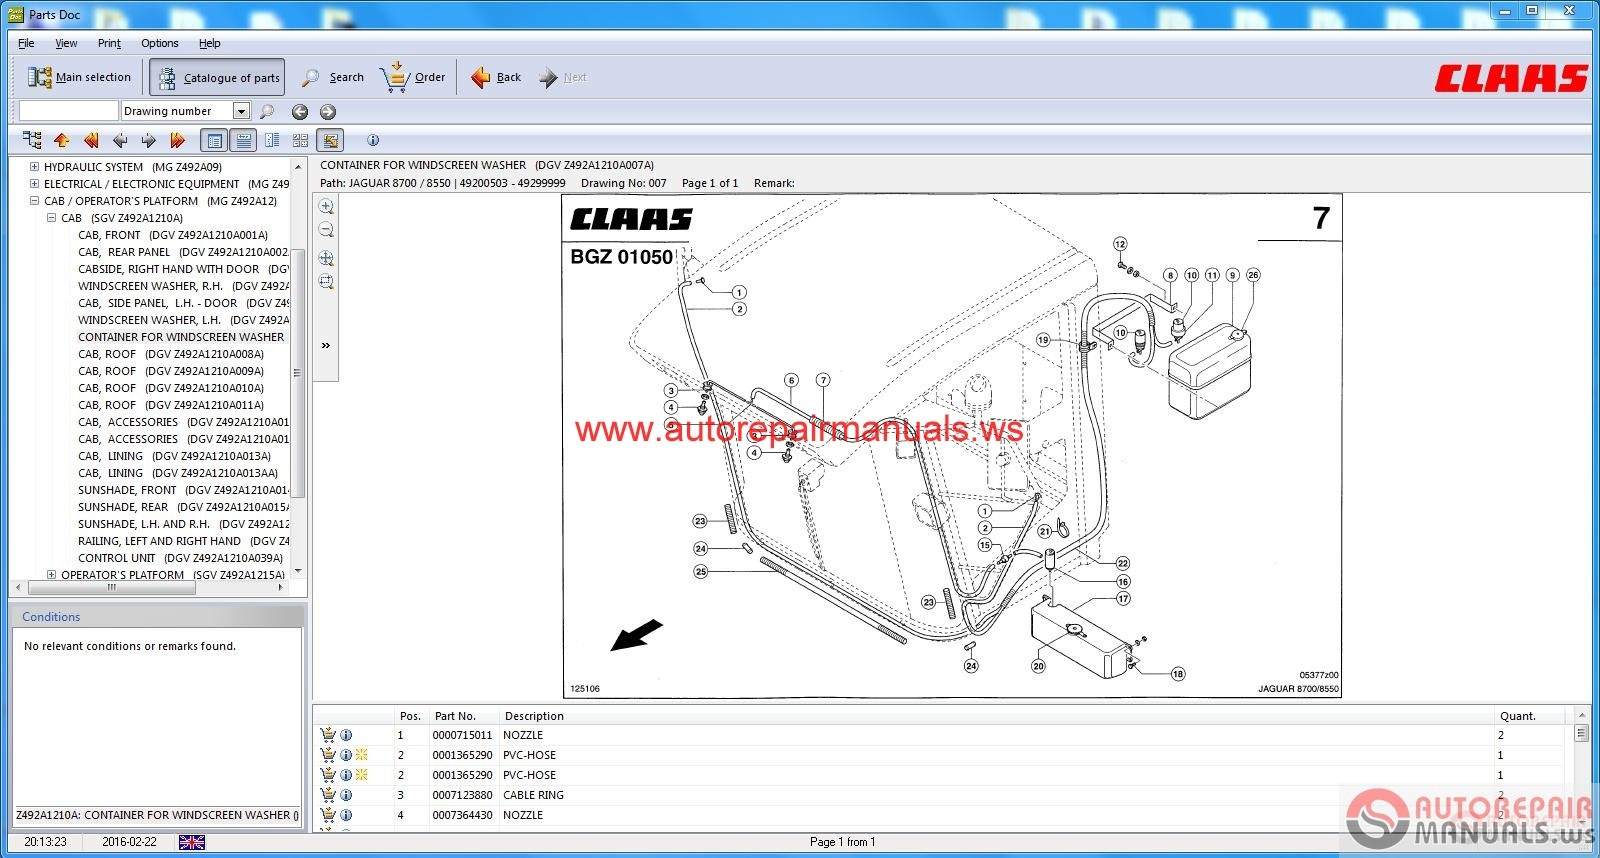 Auto Repair Manuals Claas Parts Doc V 2 0 Agricultural Full border=